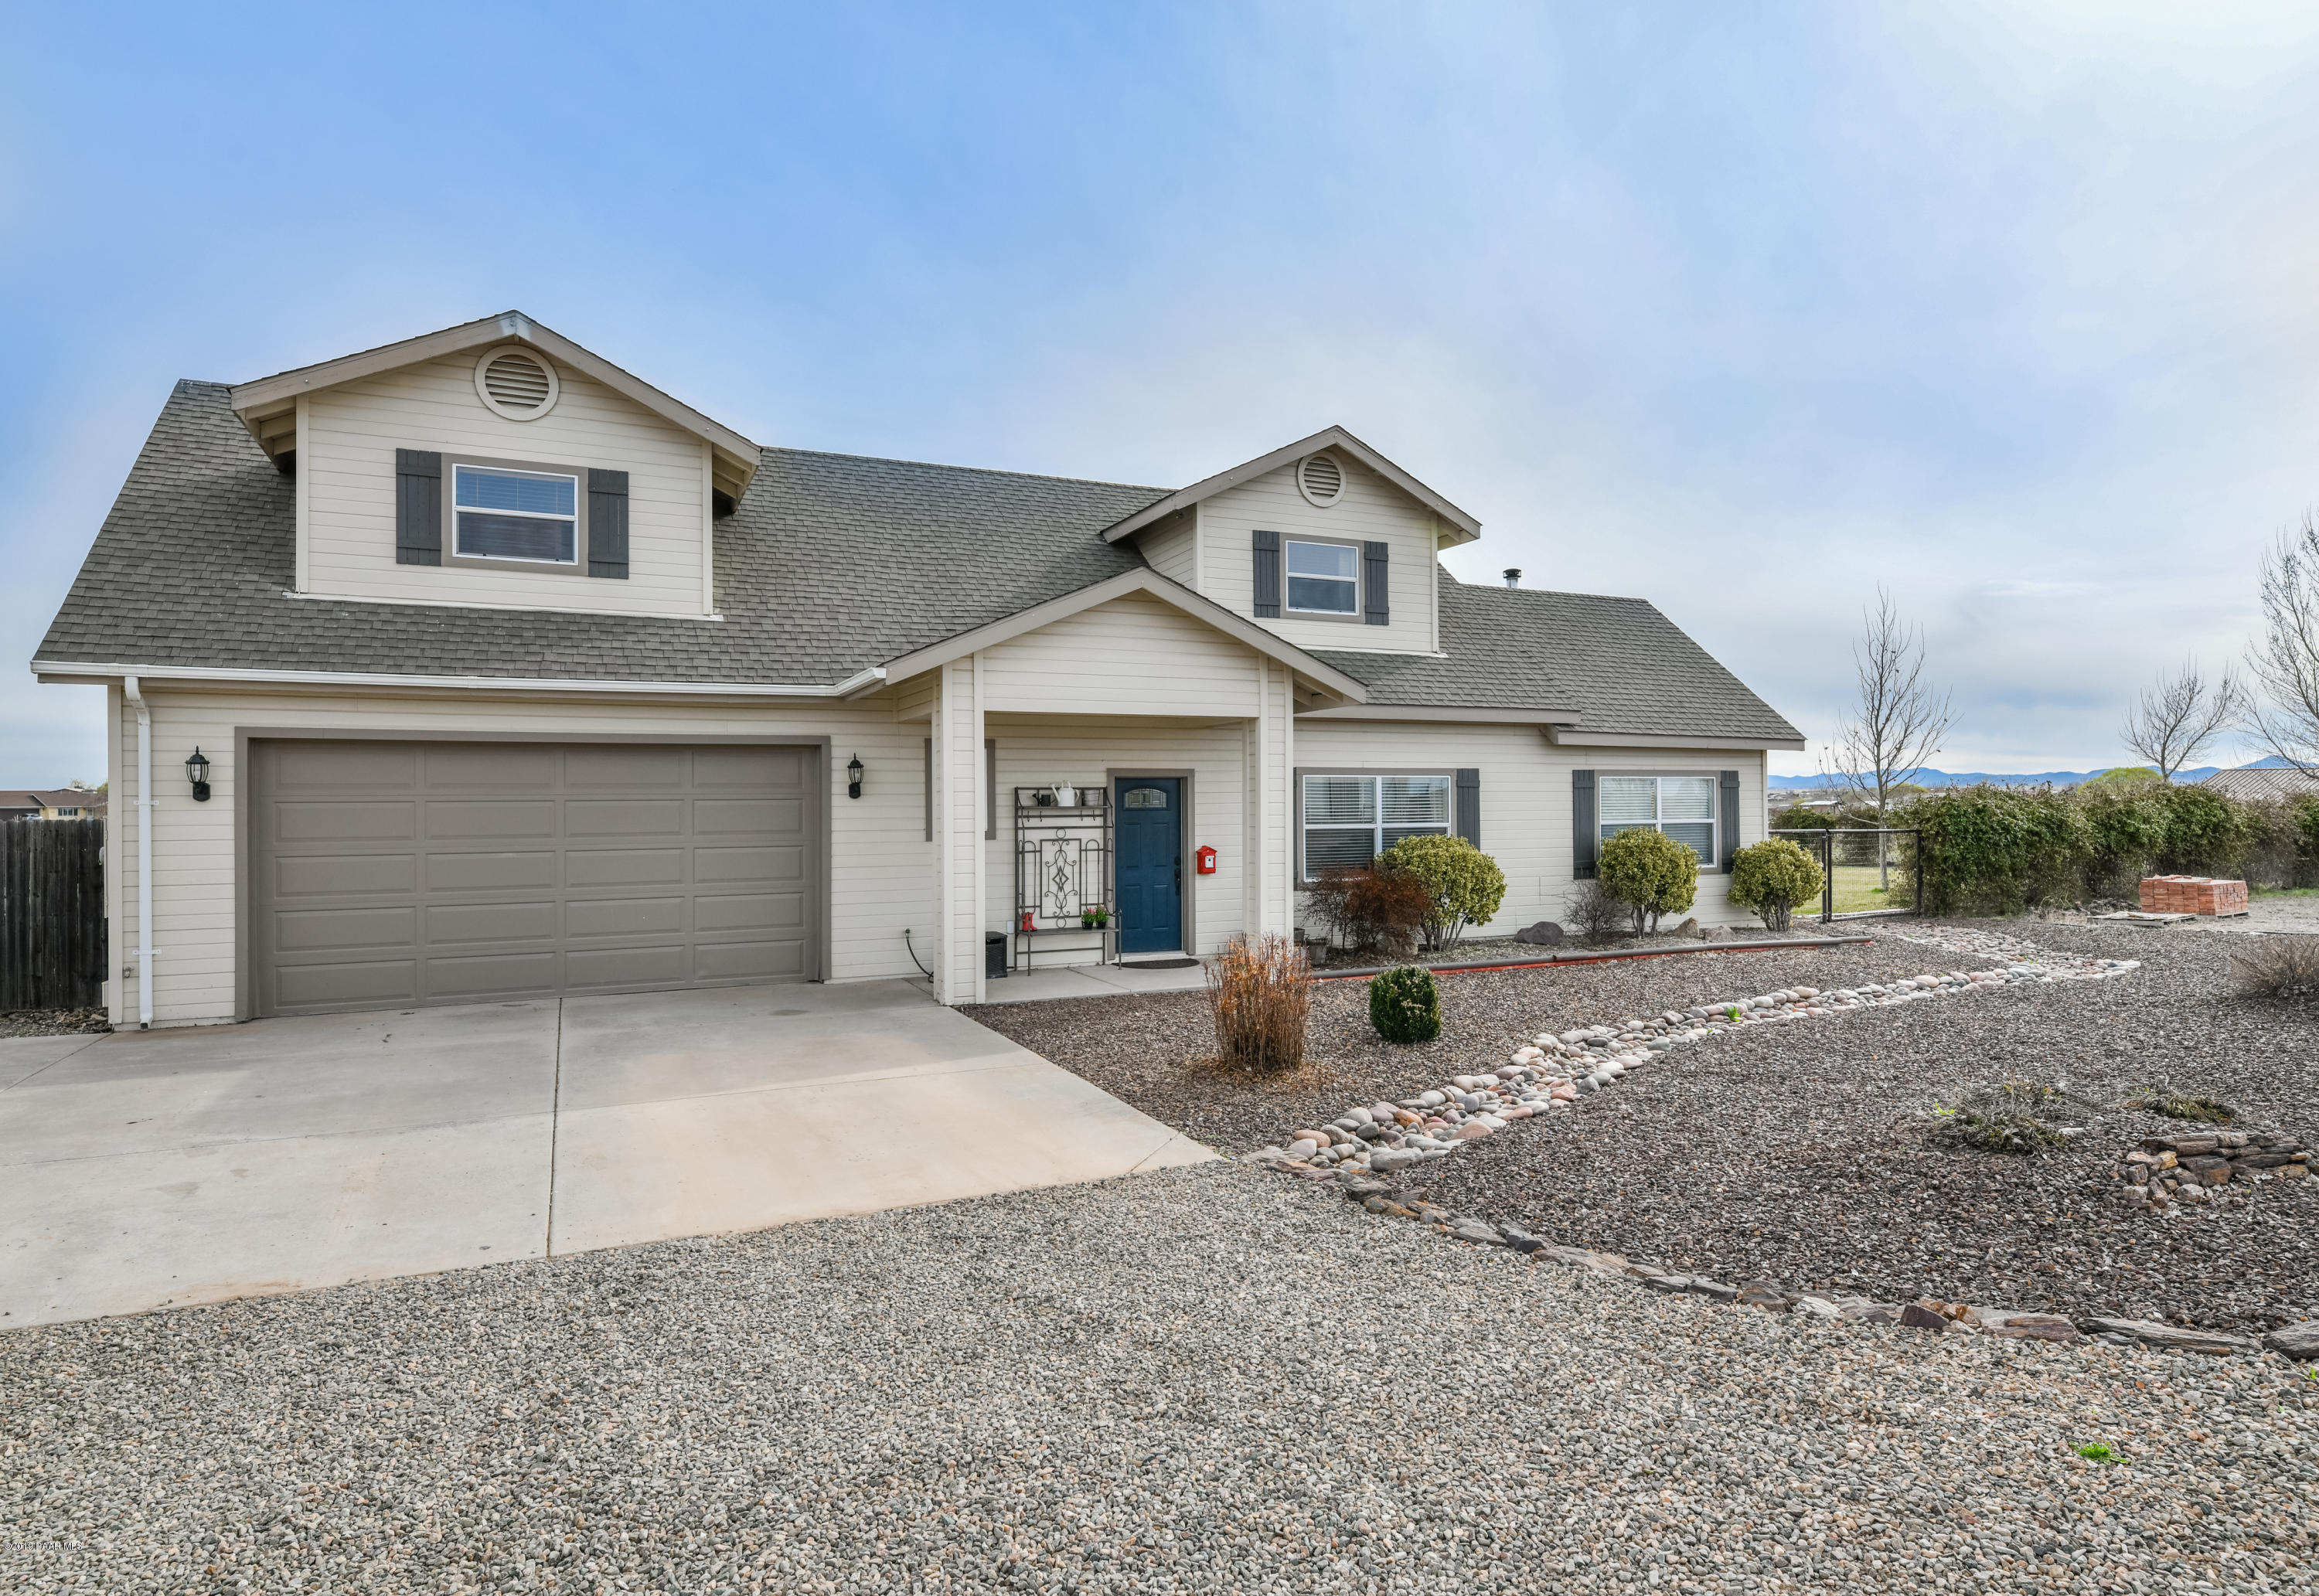 8035 E Sparrow Hawk Road, Prescott Valley, Arizona